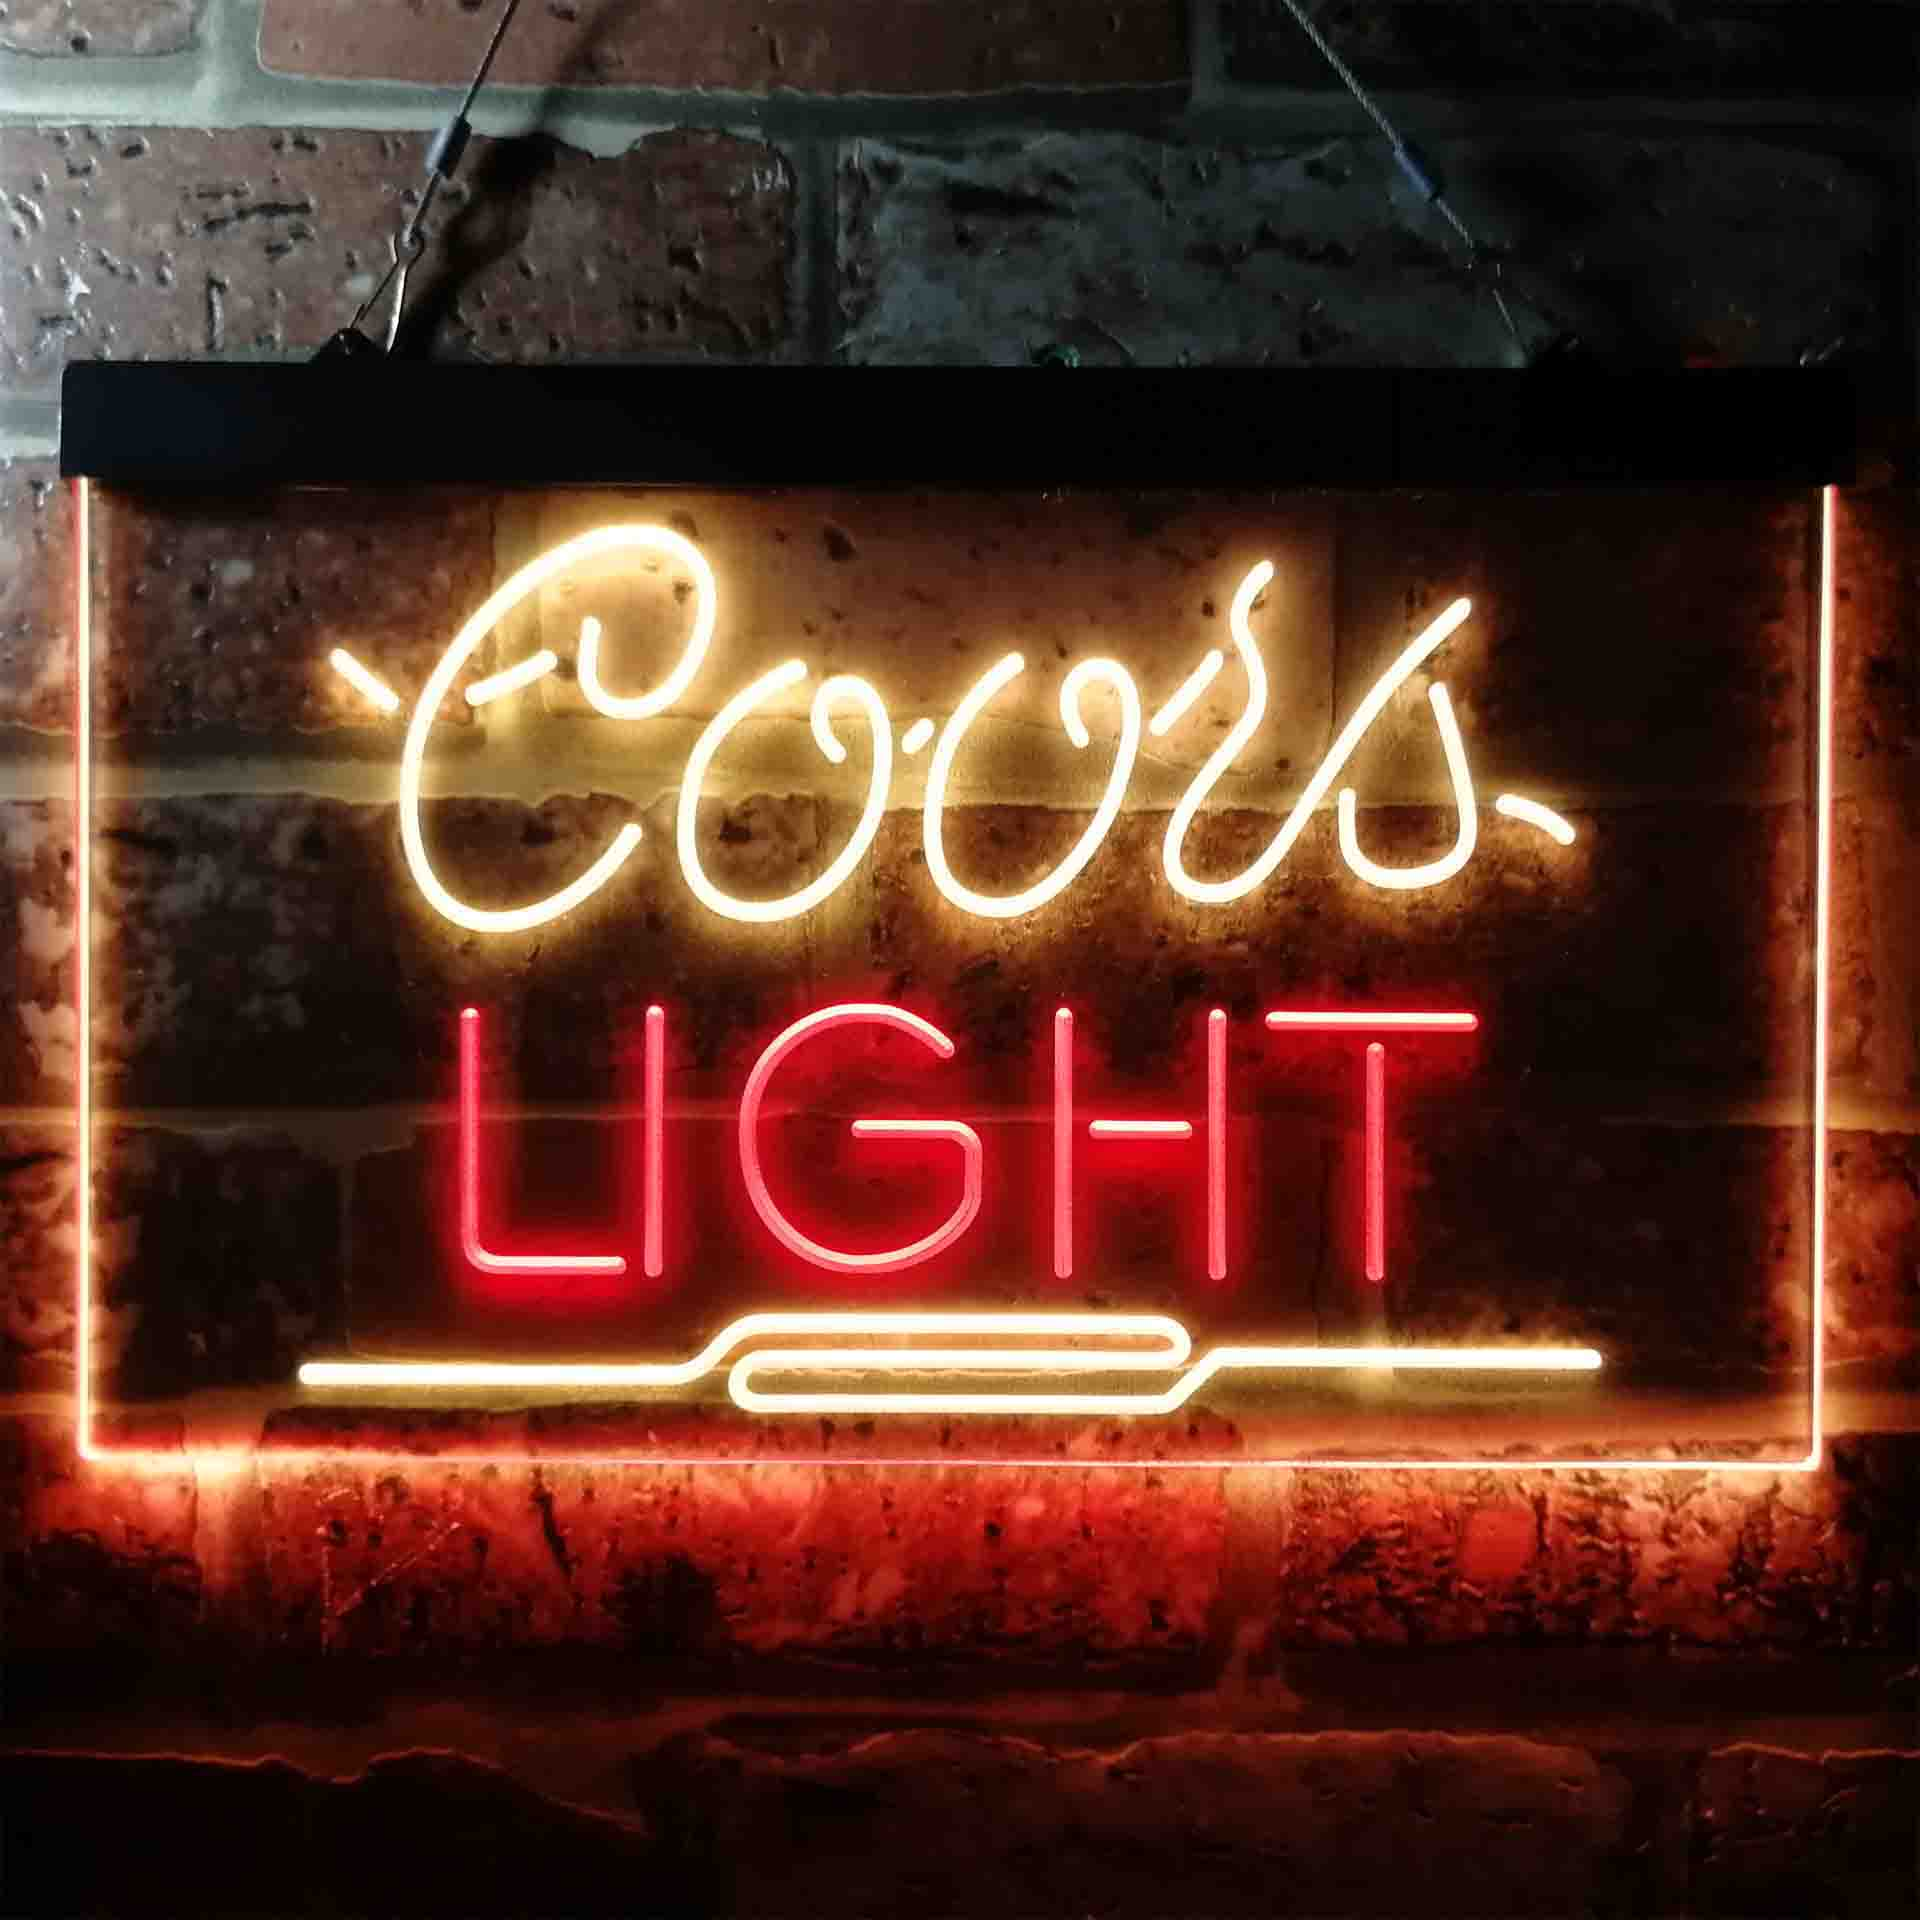 Coors Light Sport Beer Neon-Like LED Sign